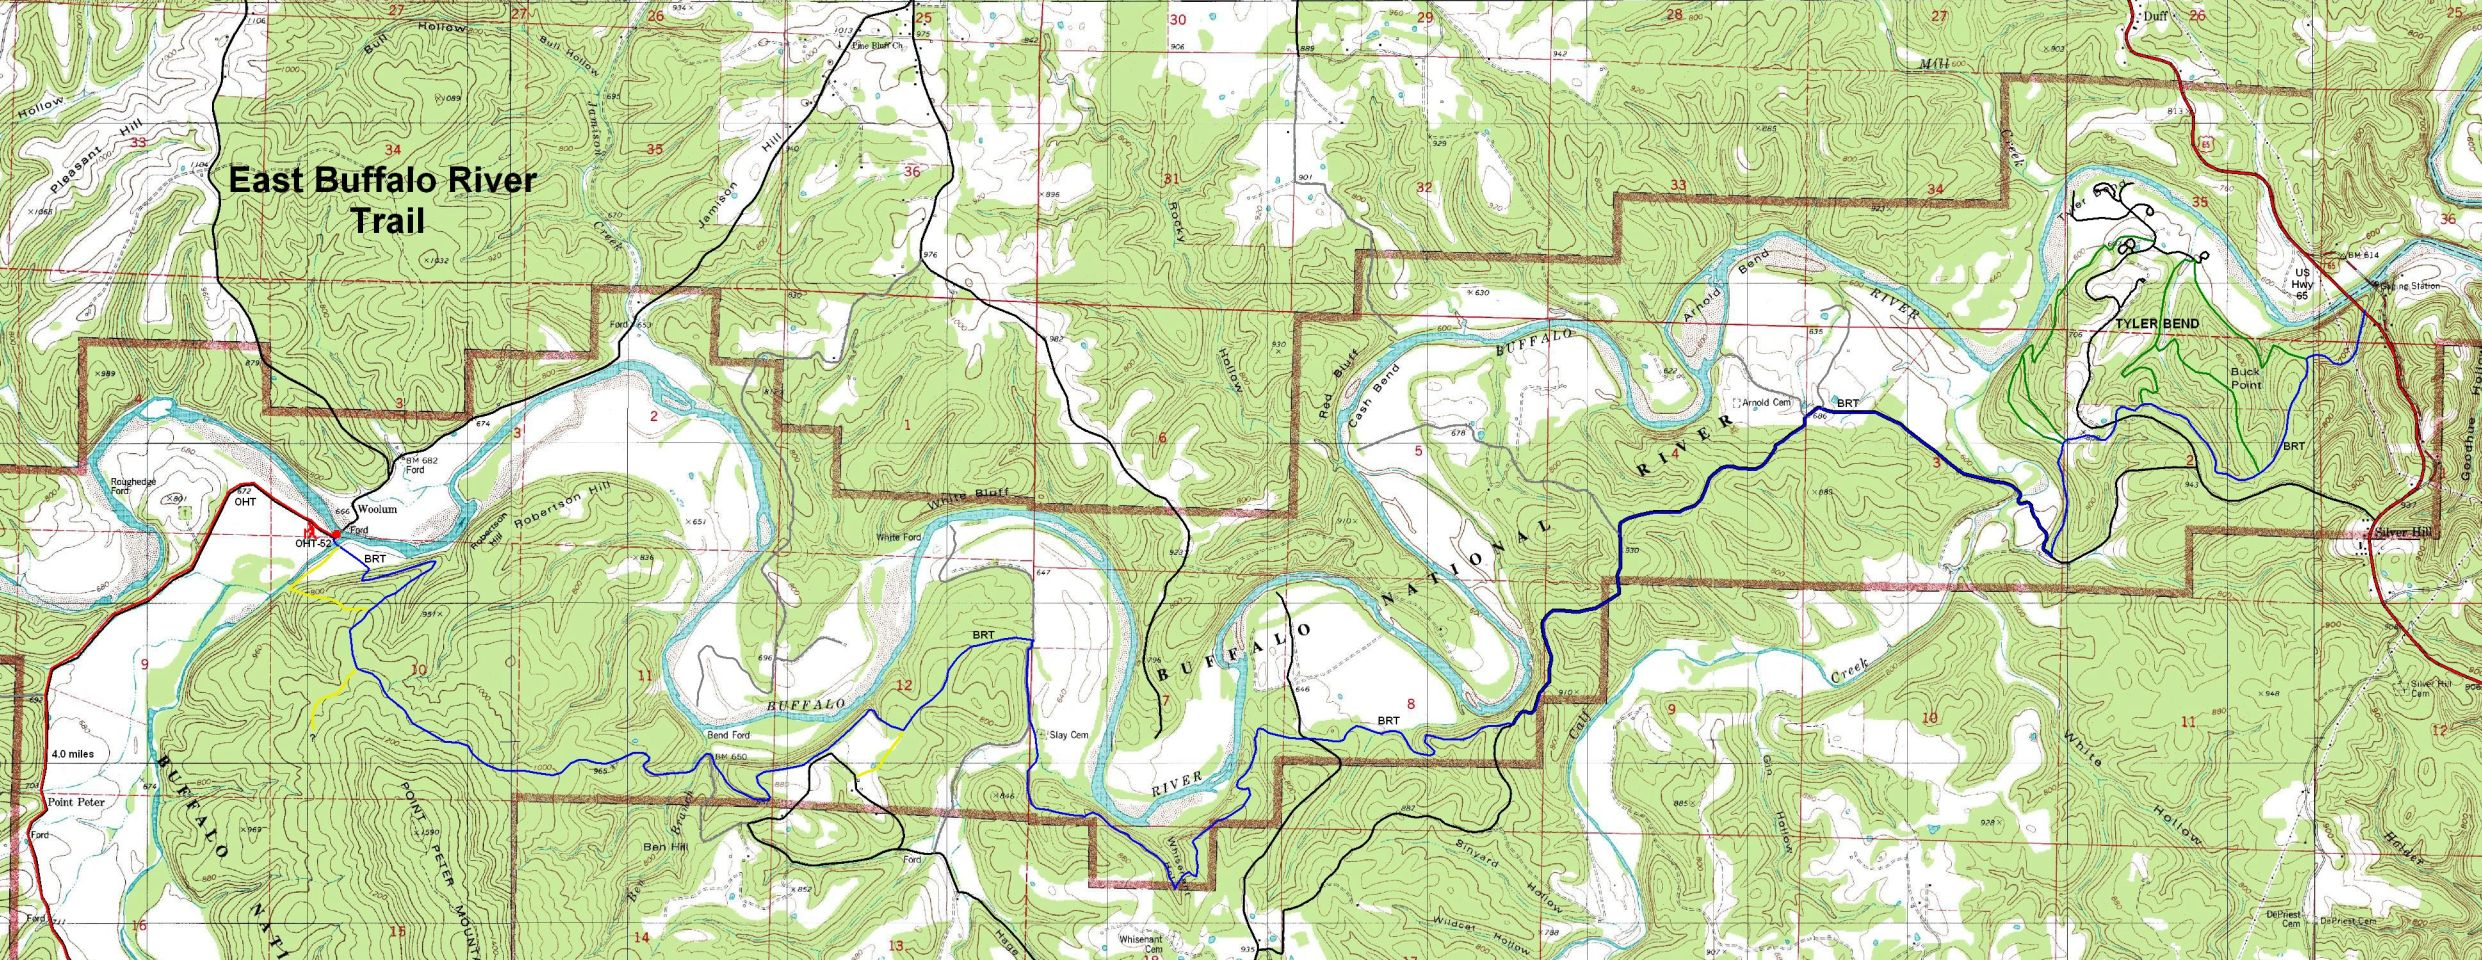 Buffalo River Trail Eastern Section Free Detailed Topo Map - Topographical map eastern us